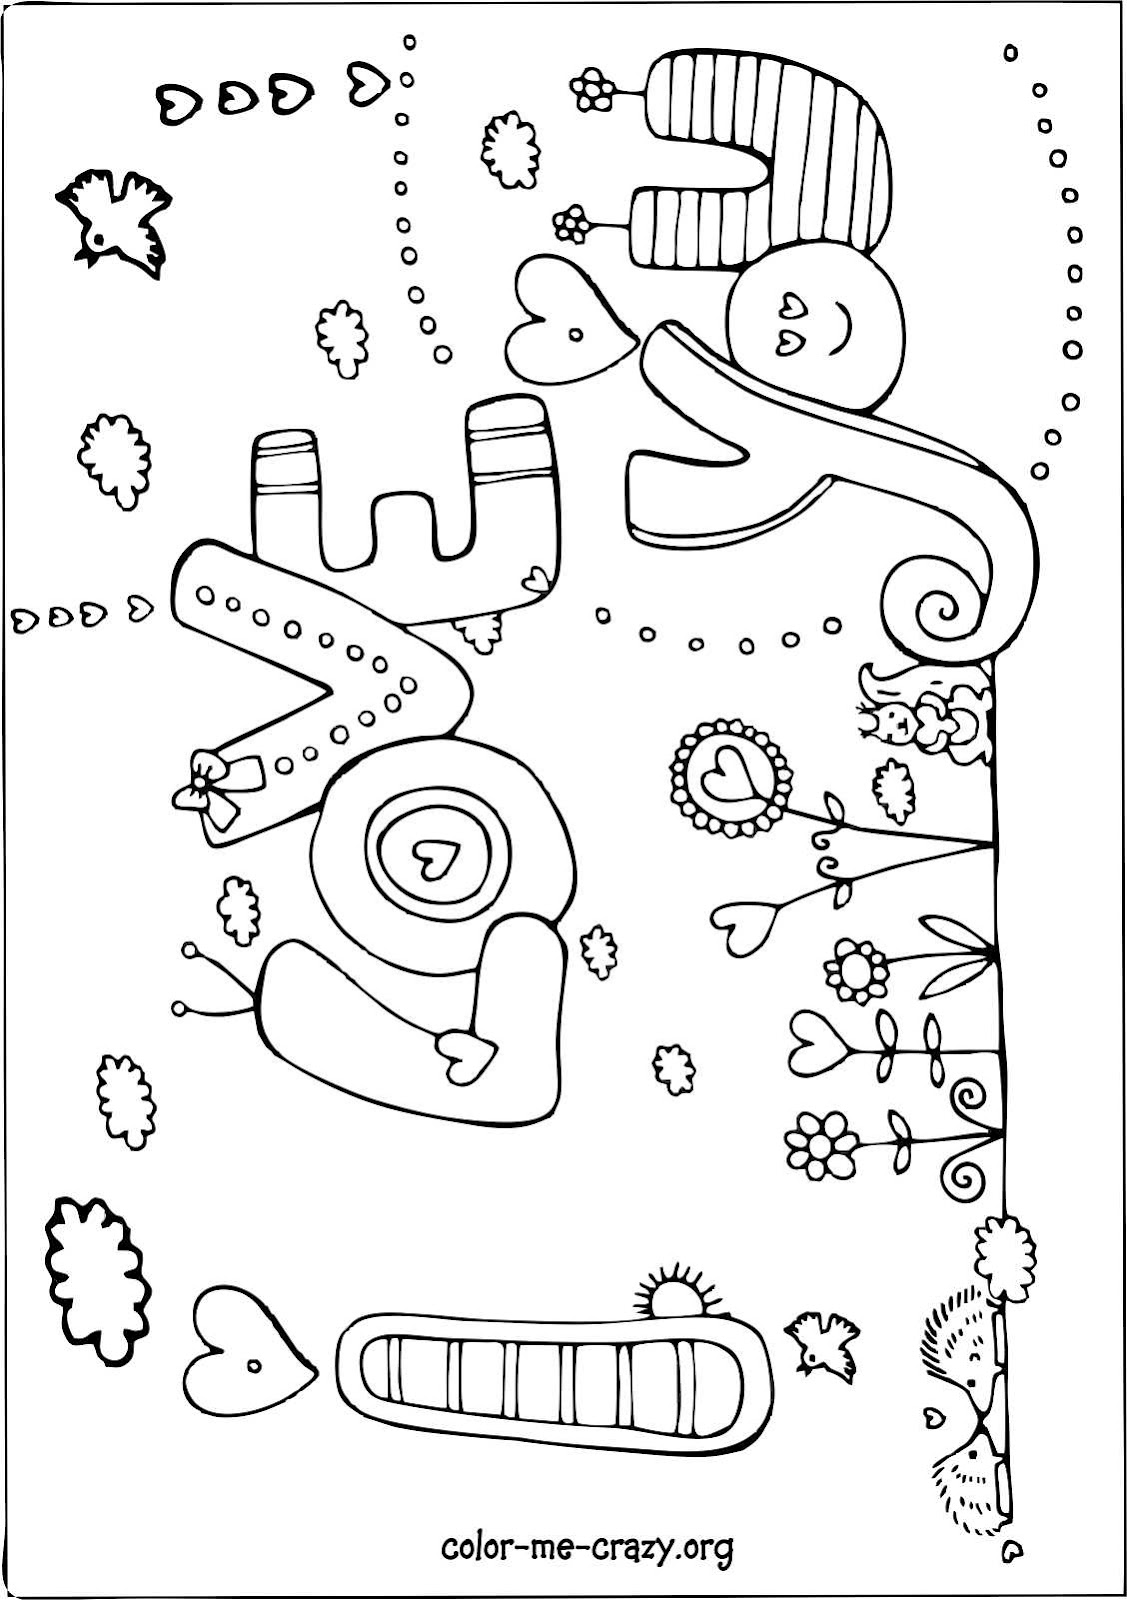 valentines coloring pages printable colormecrazyorg valentine coloring pages pages coloring valentines printable